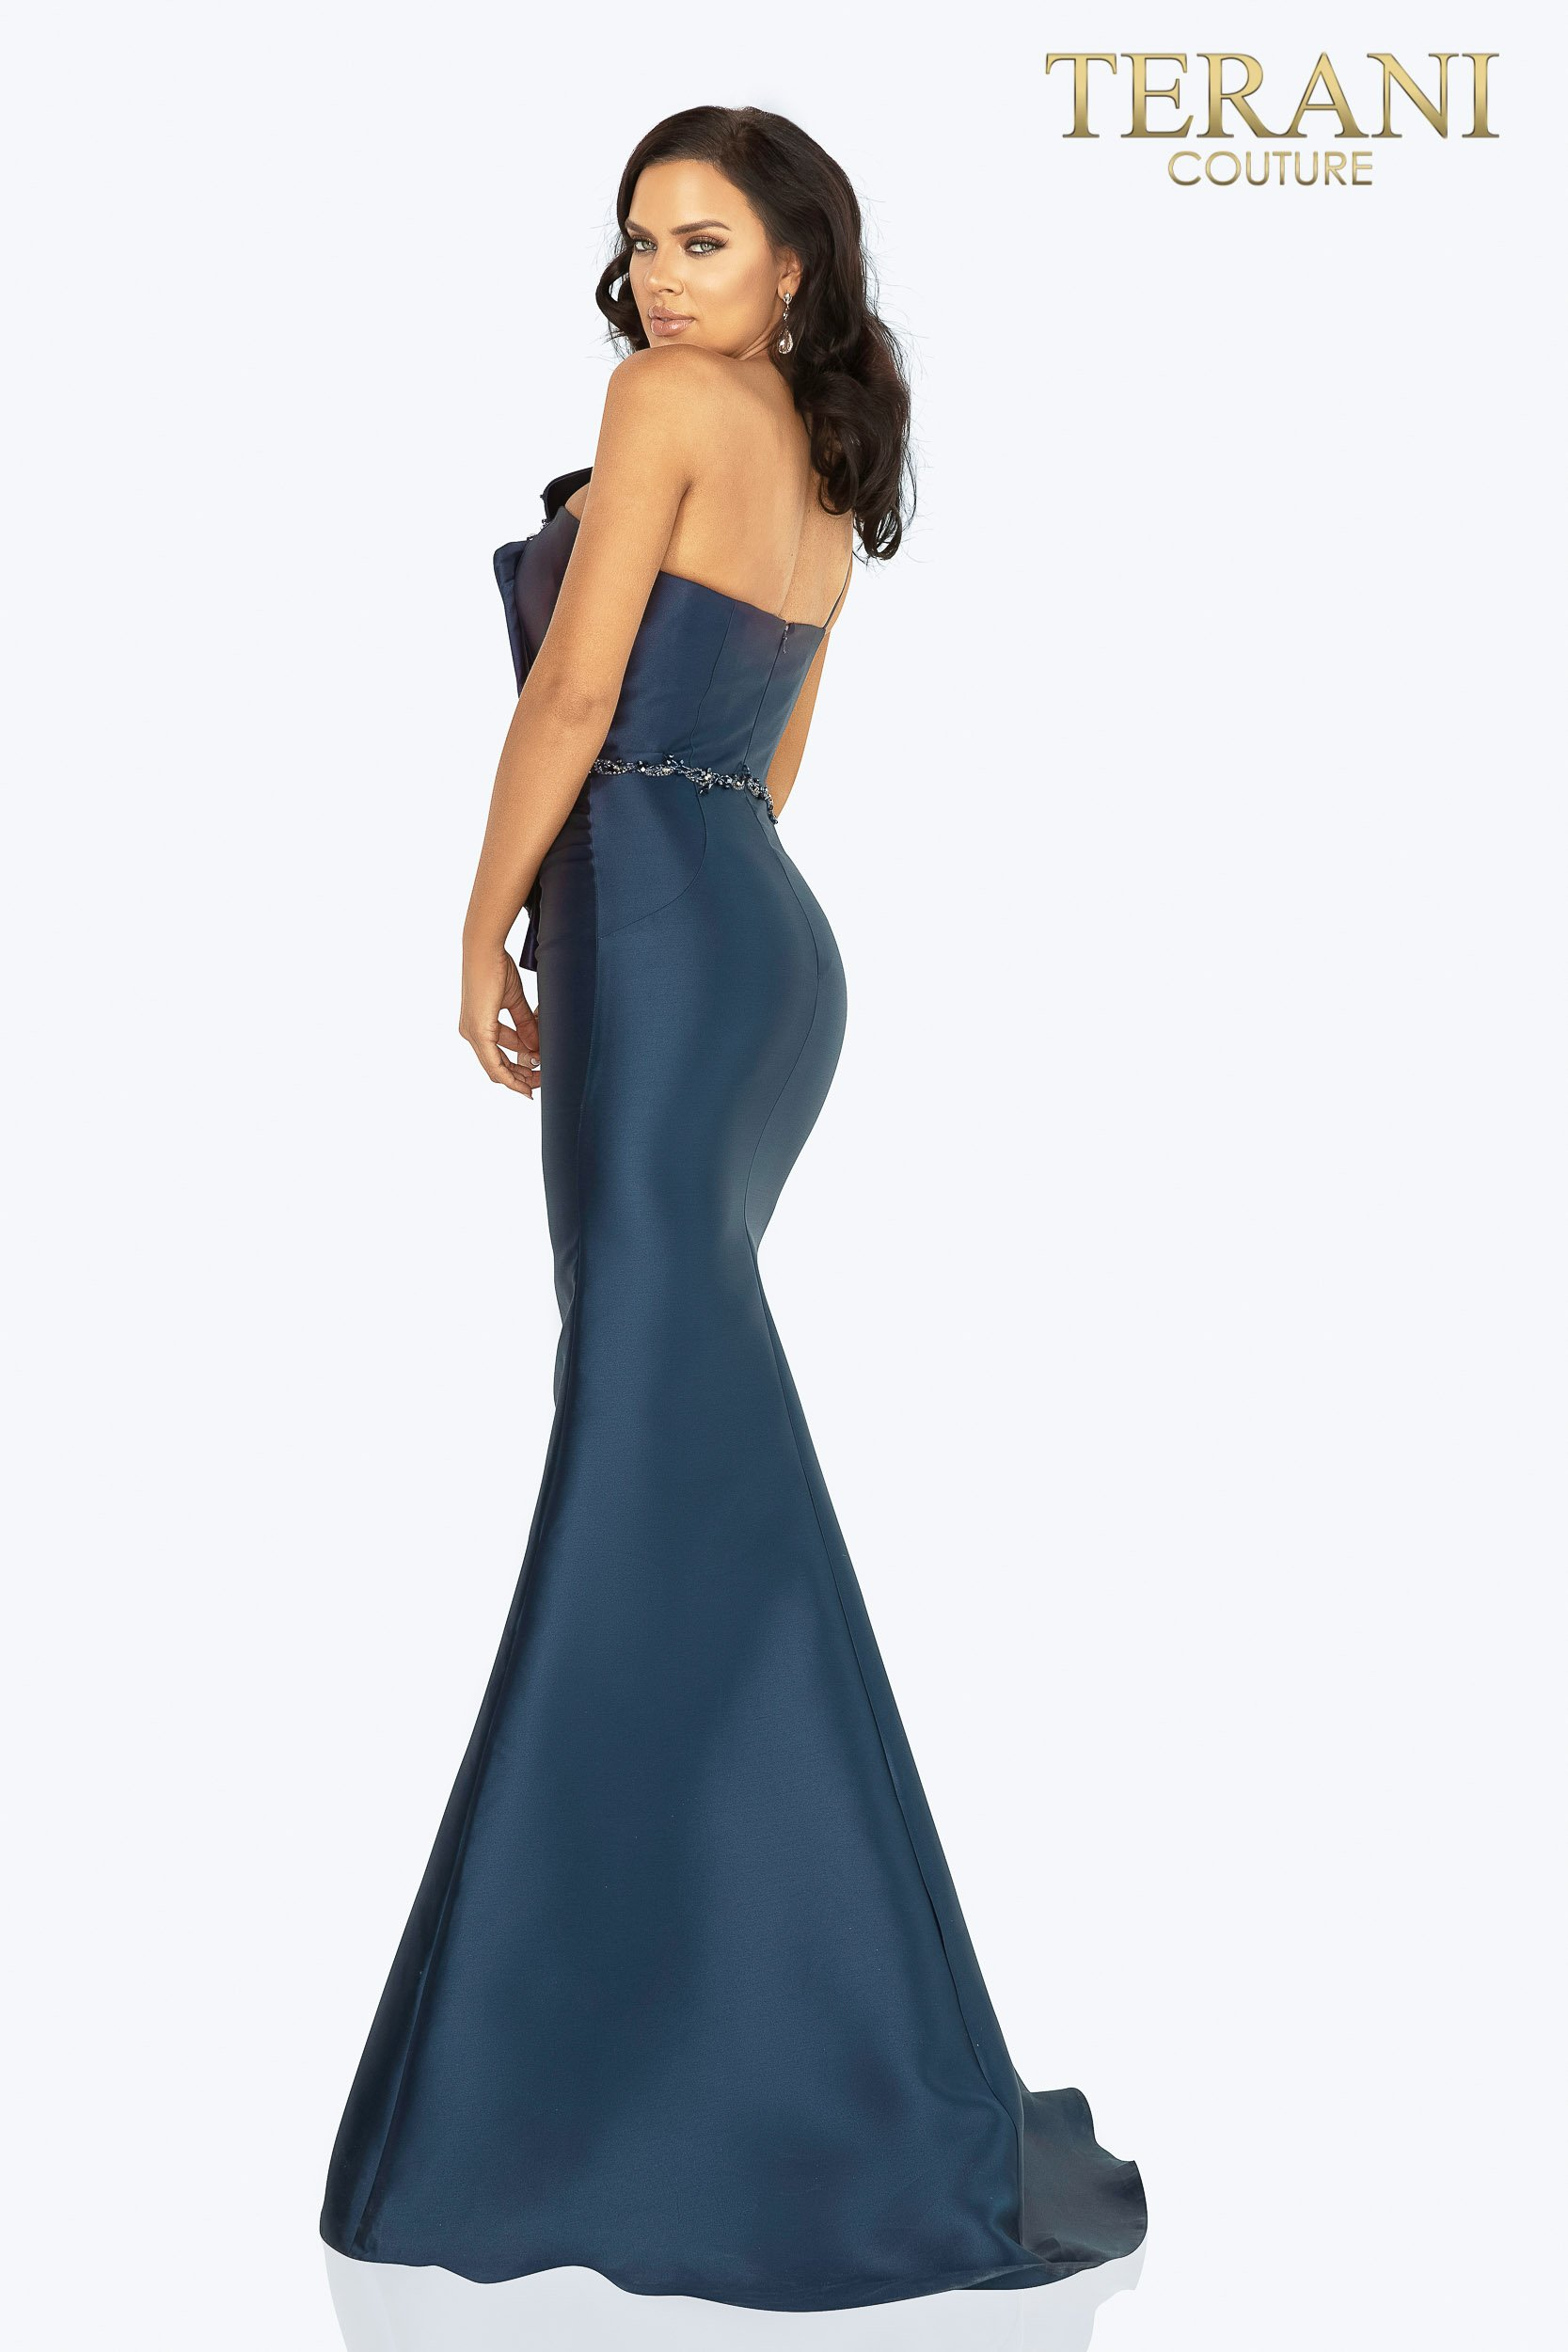 Style: Mikado one shoulder bead detailed evening gown with slit – 2011E2103